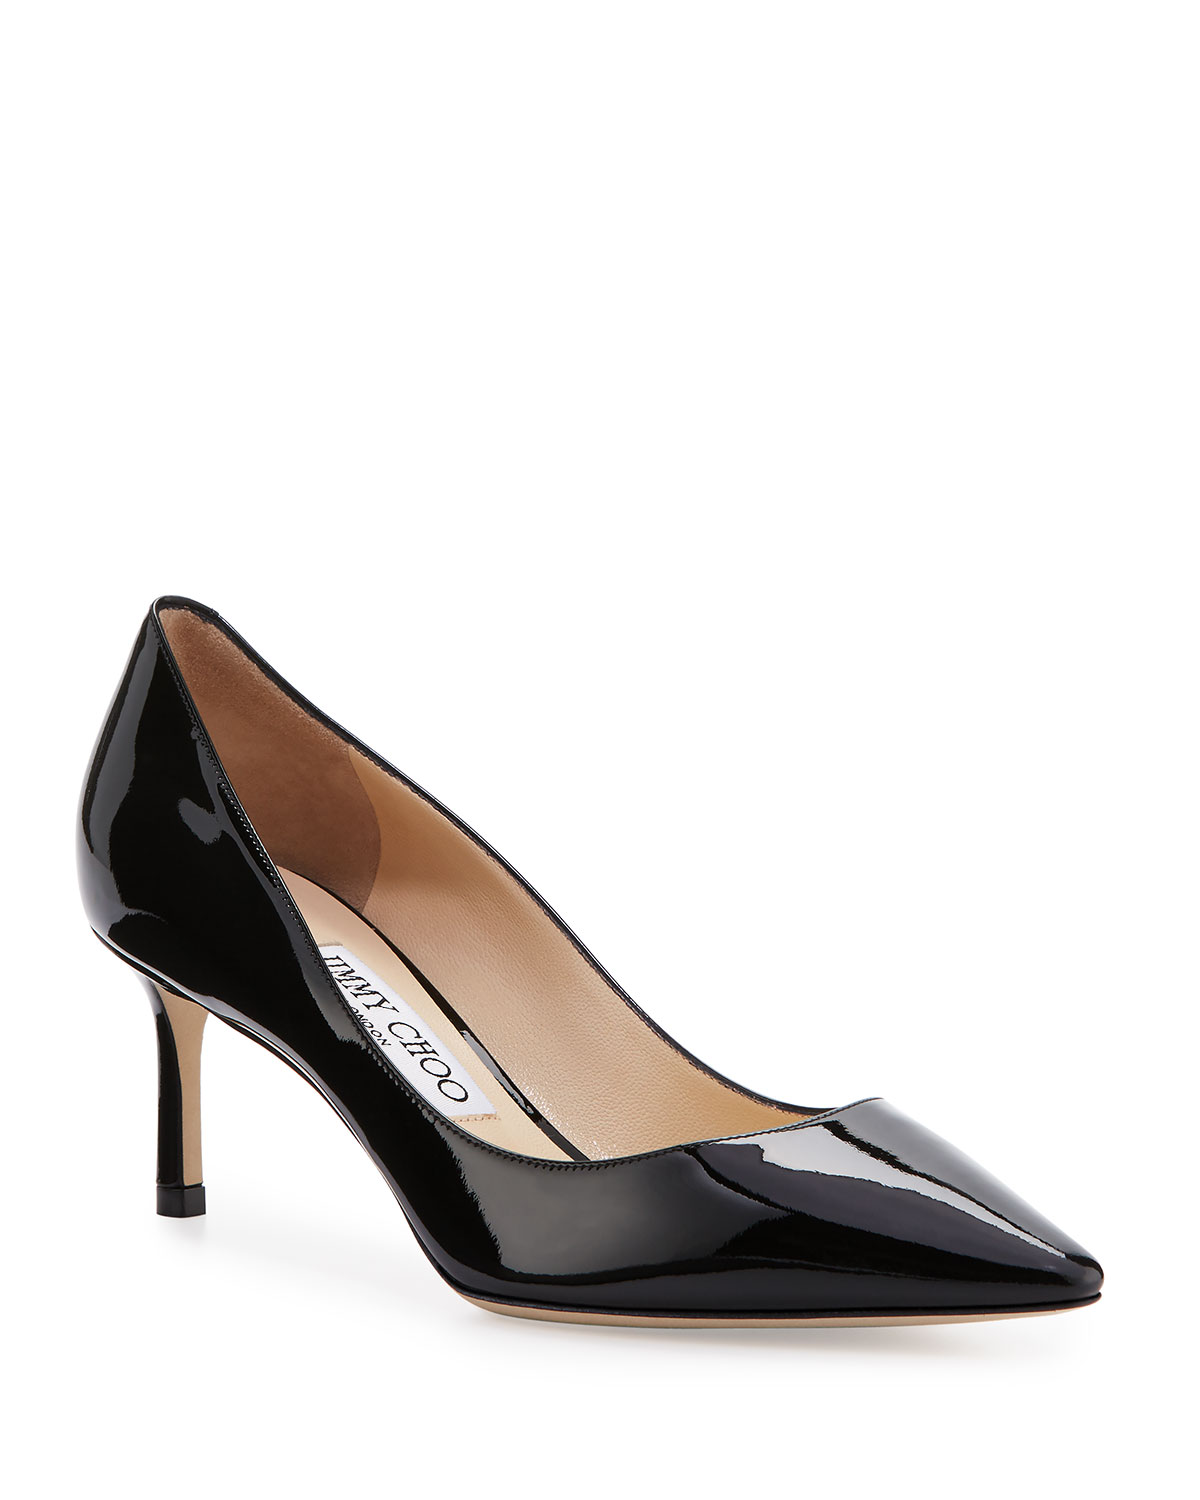 458fe2bd9e Jimmy Choo Romy 60mm Patent Pointed-Toe Pumps, Black | Neiman Marcus